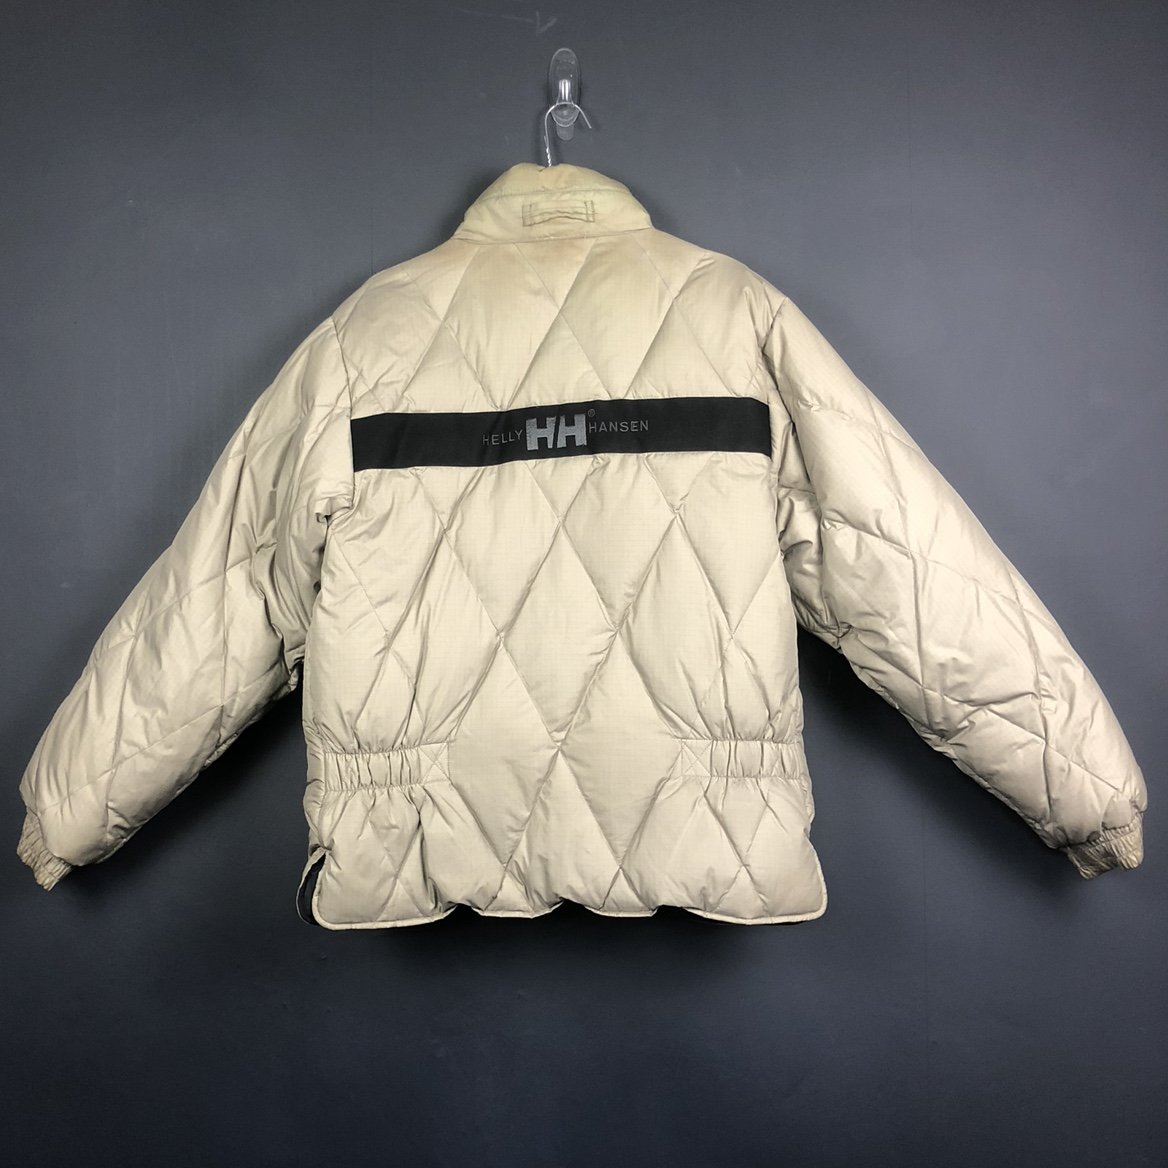 Vintage Helly Hansen Reversible Puffer Jacket in Beige & Black - Women's Medium - Vintique Clothing